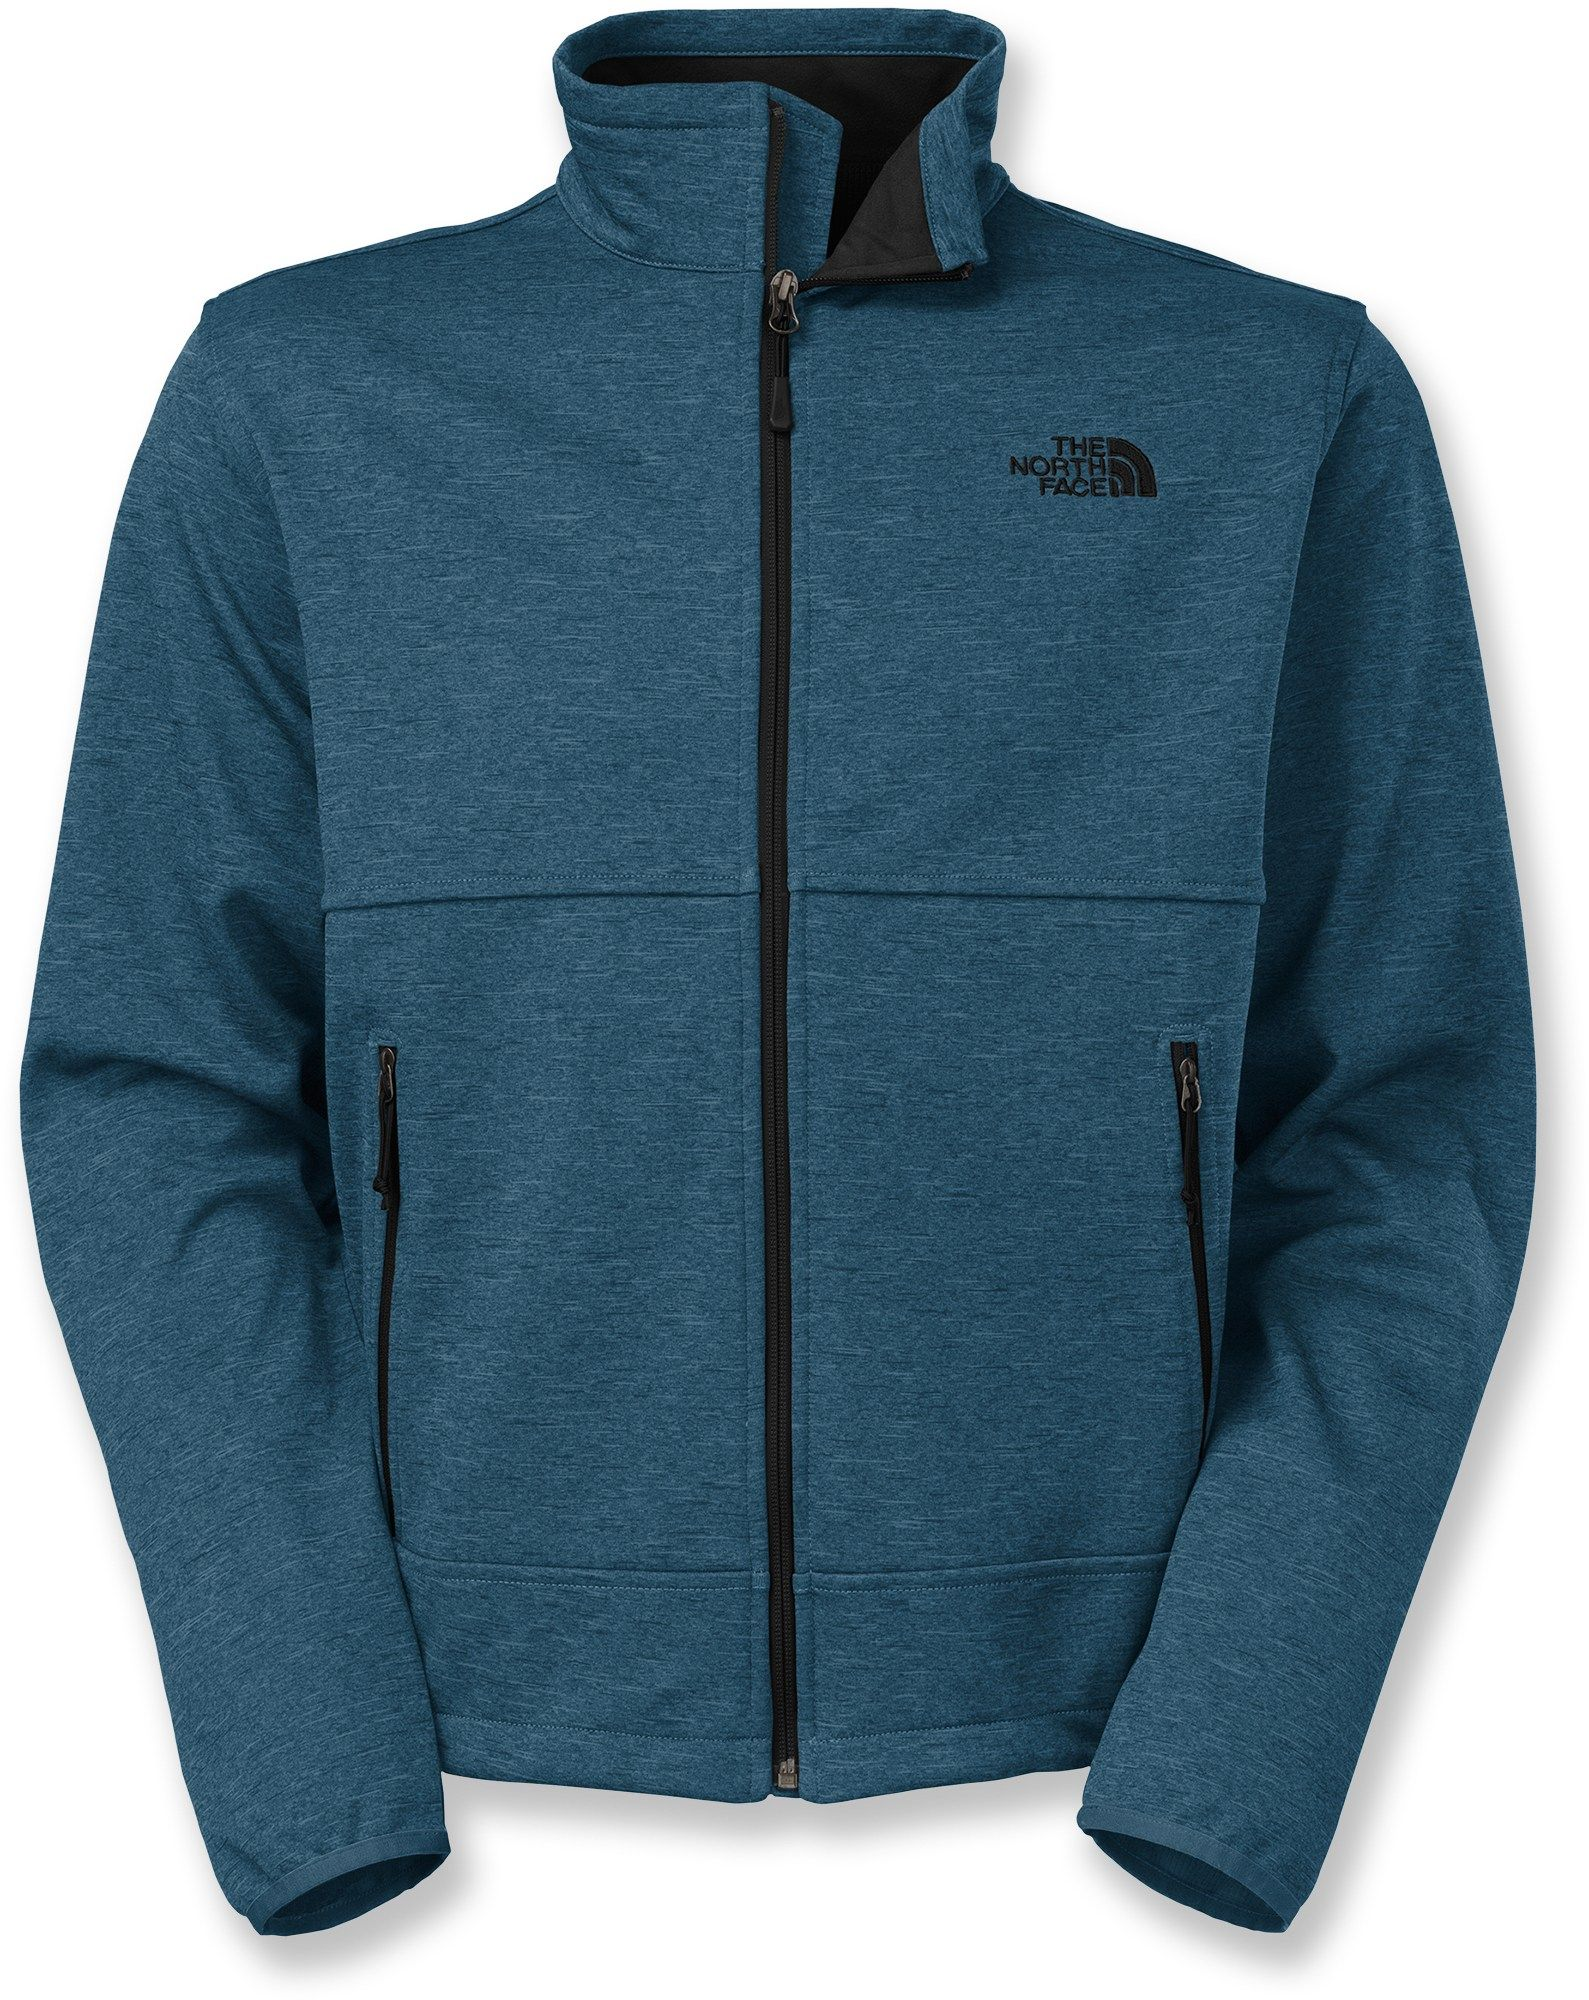 The North Face Canyonwall Fleece Jacket - Men\'s